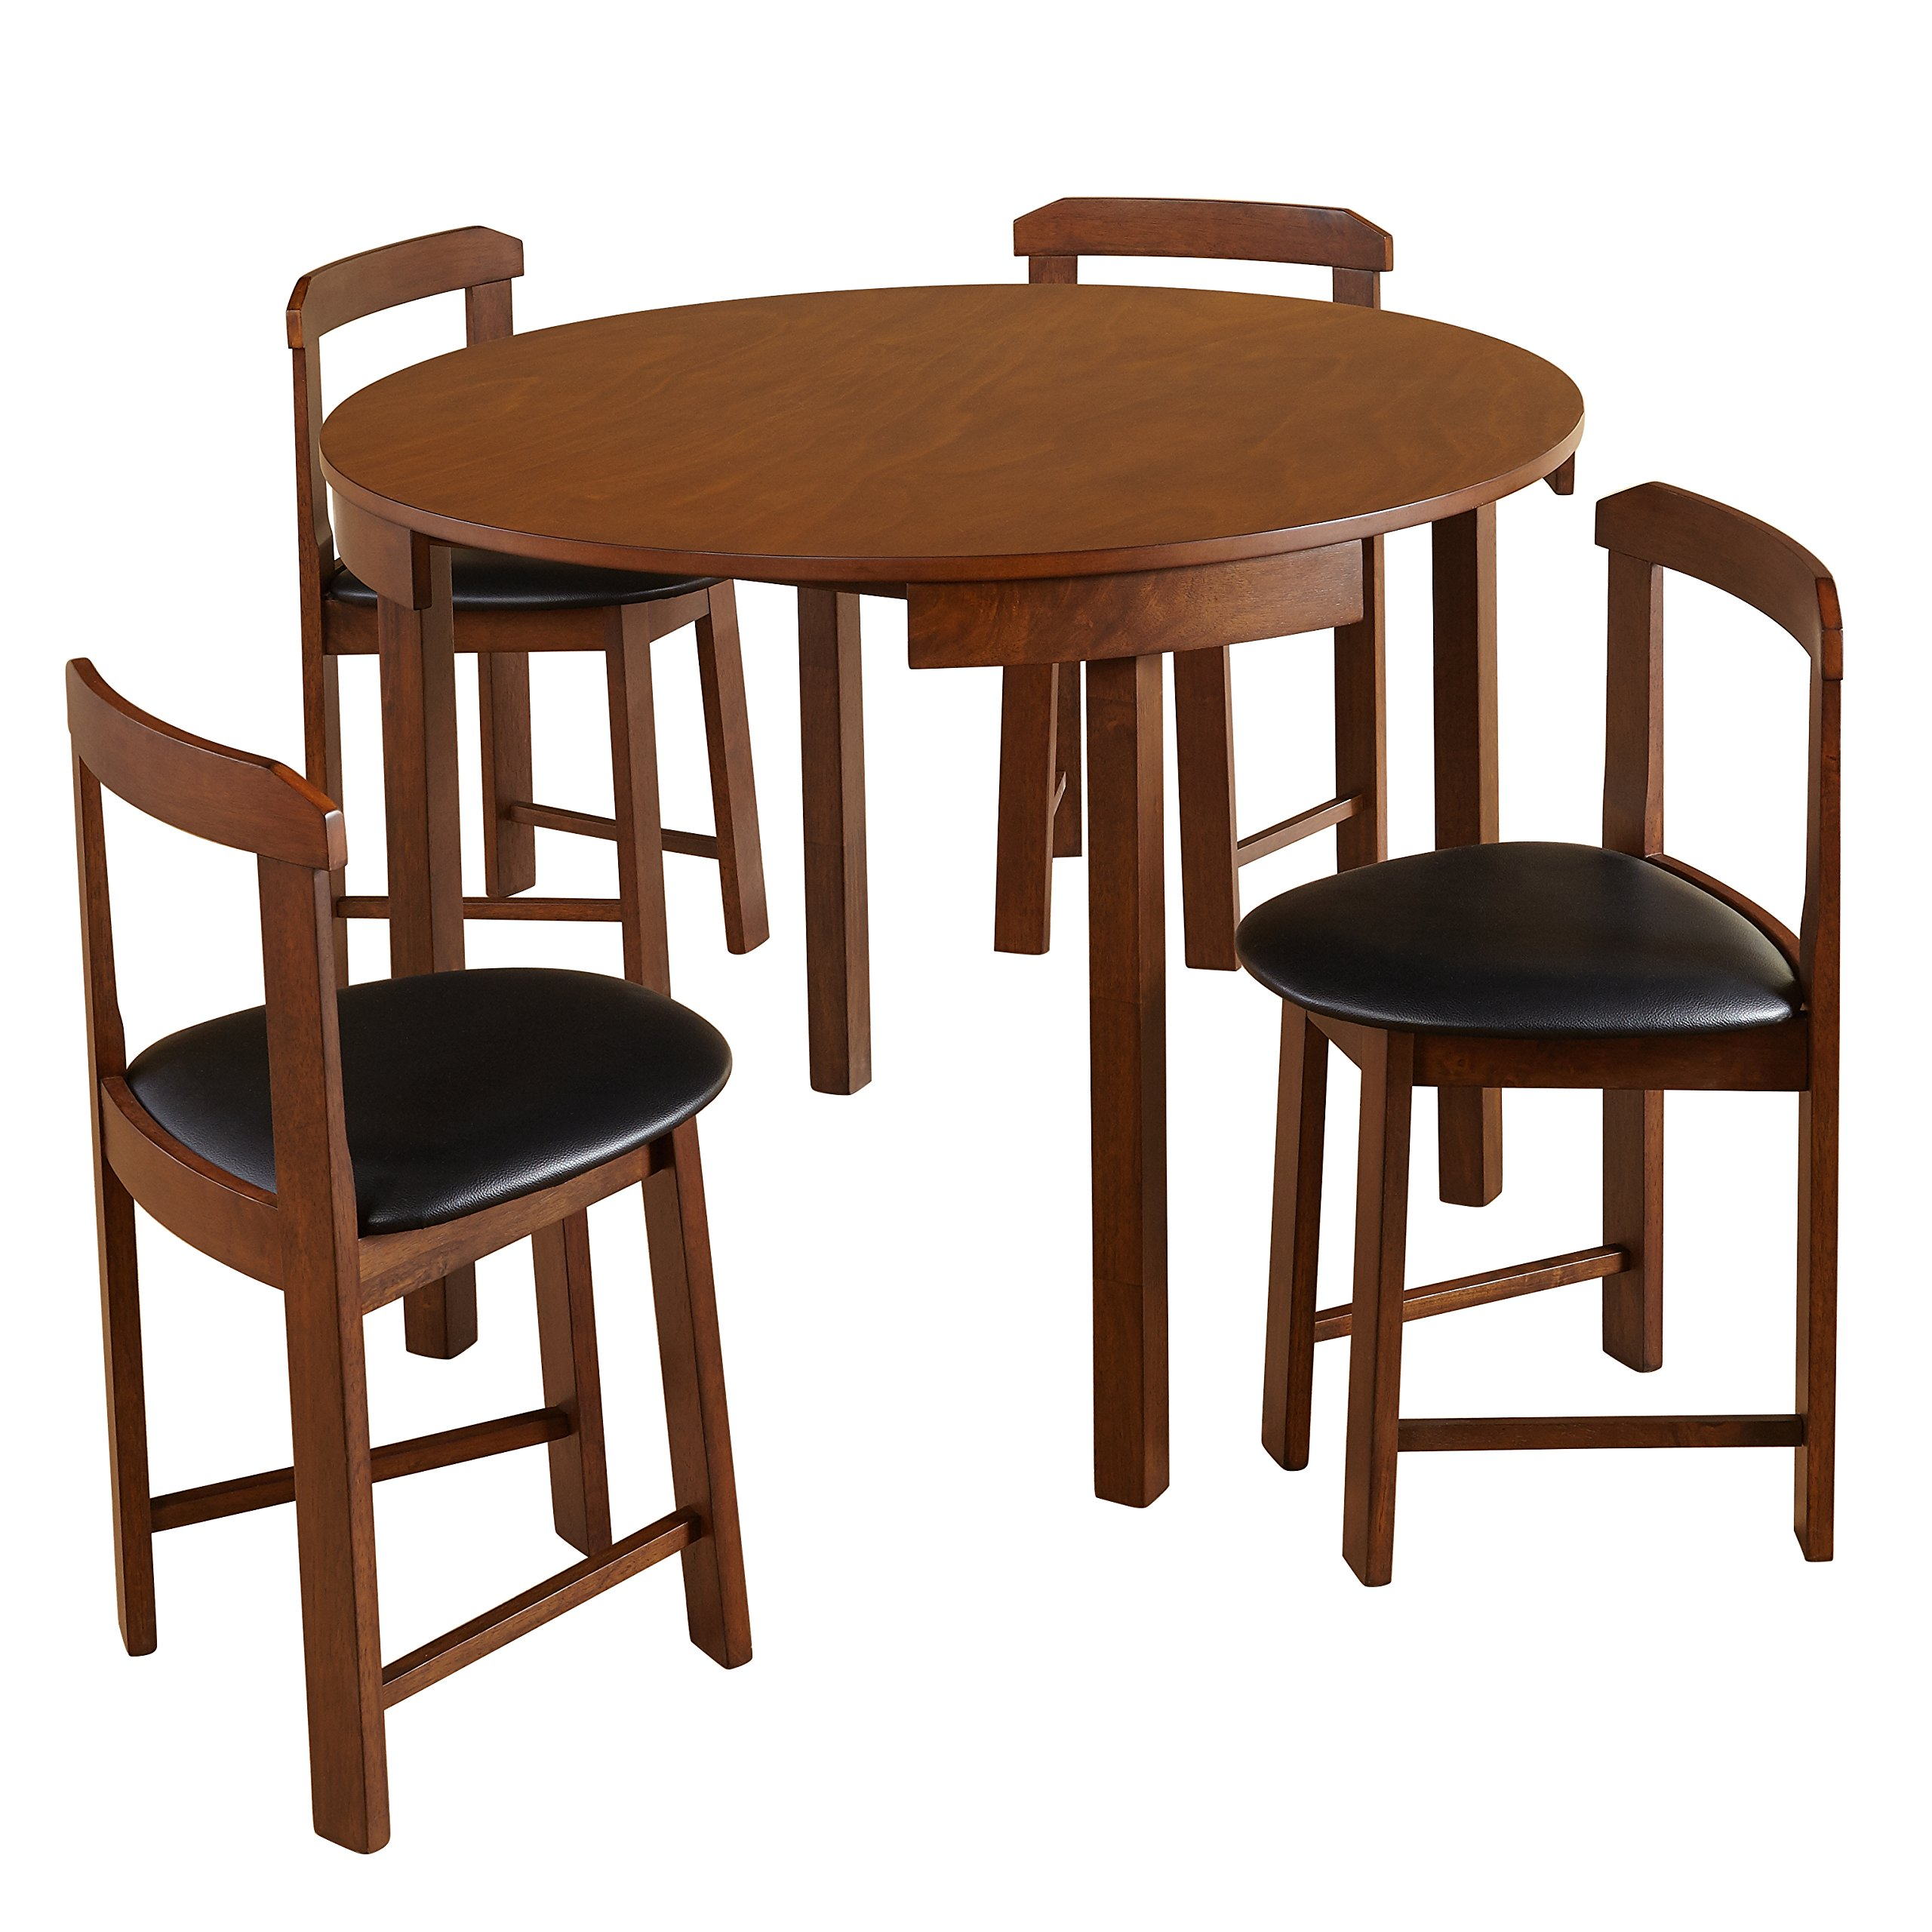 Target Marketing Systems 35515WAL Zuma Collection Compact Set 5-Piece Round Nesting Dining Table & Chairs, Walnut